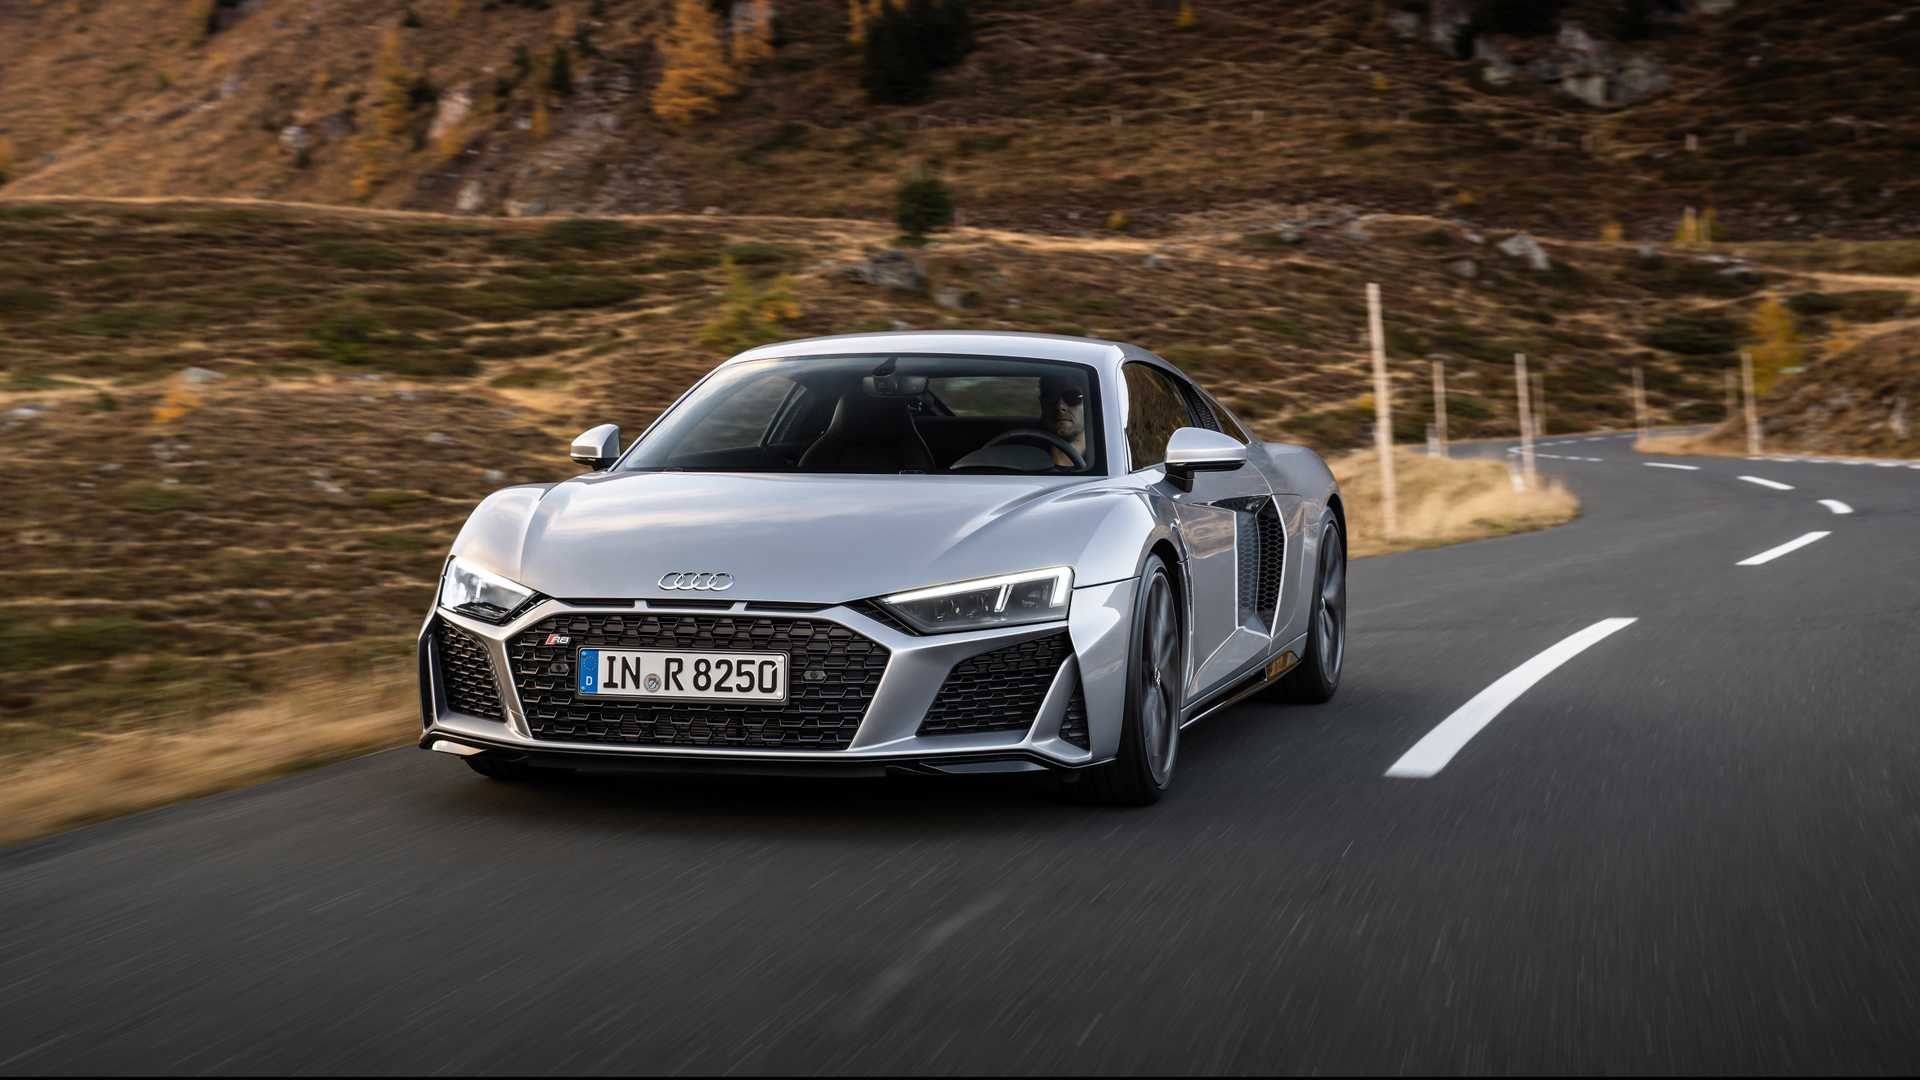 Audi R8 V10 Goes RWD, Inspired by the R8 V10 RWS Special Edition -  autoevolution